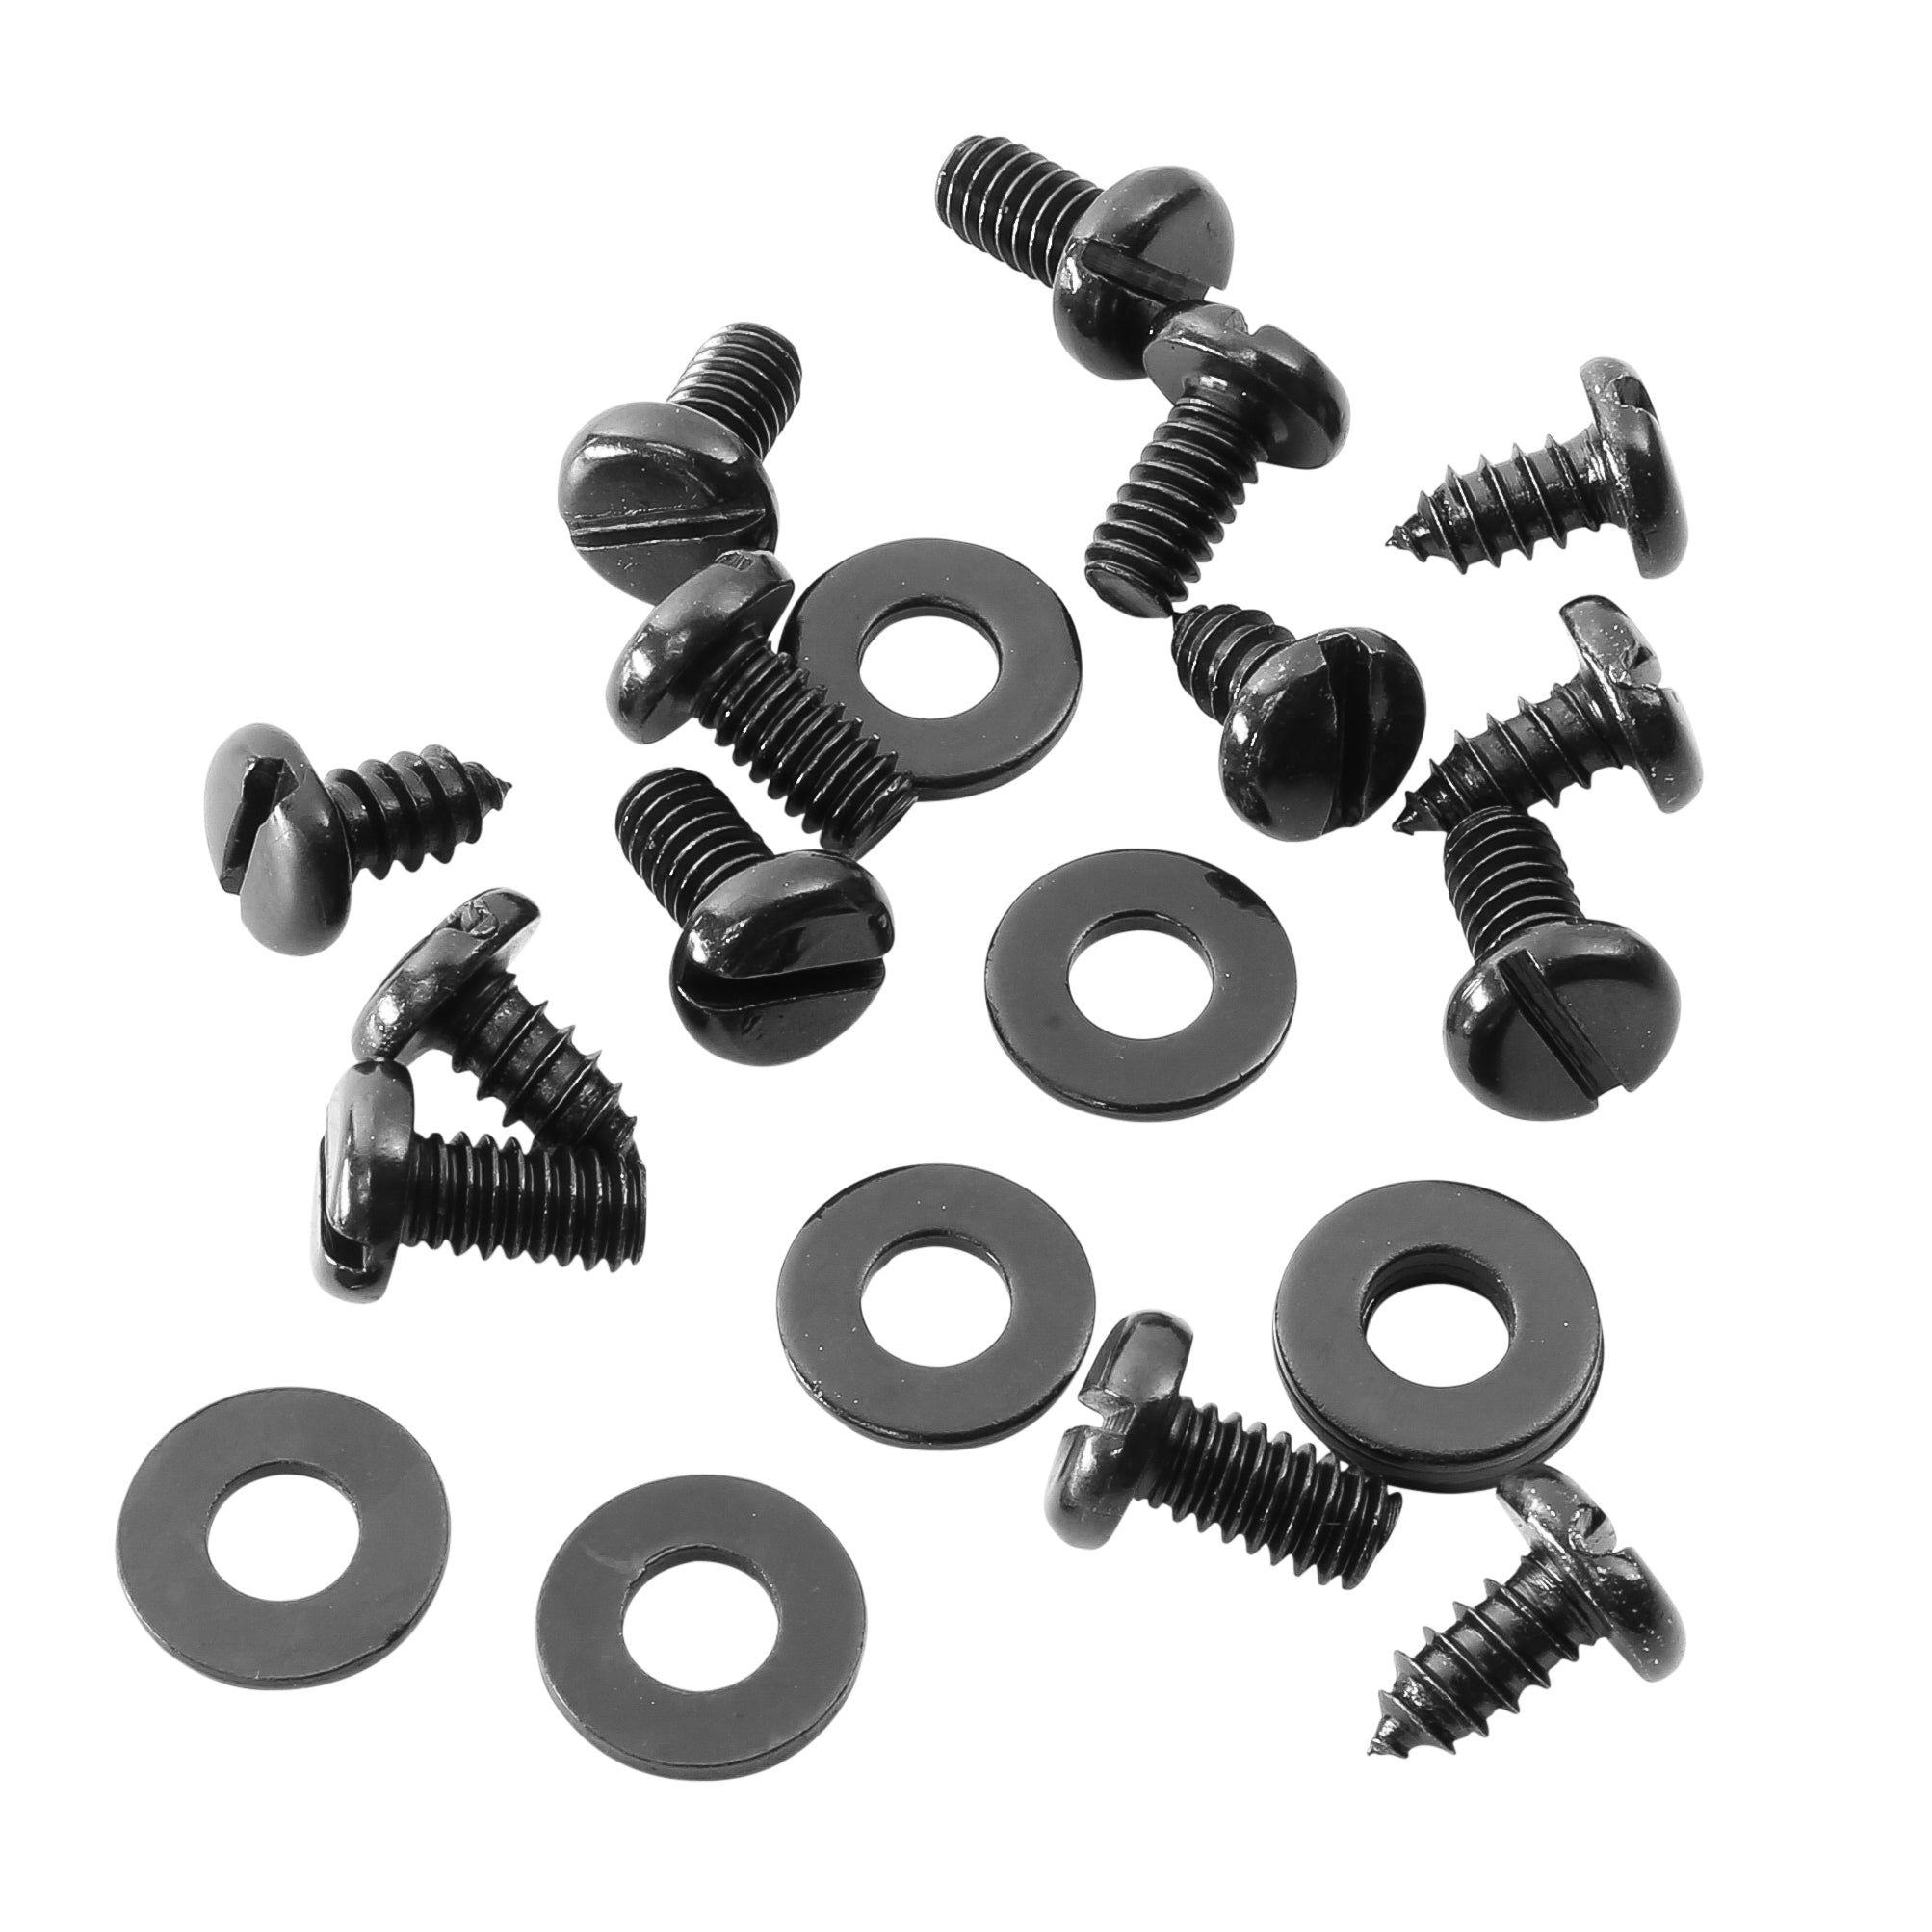 Transmission Metal Cover Screws and Washers • 1937-40 Ford